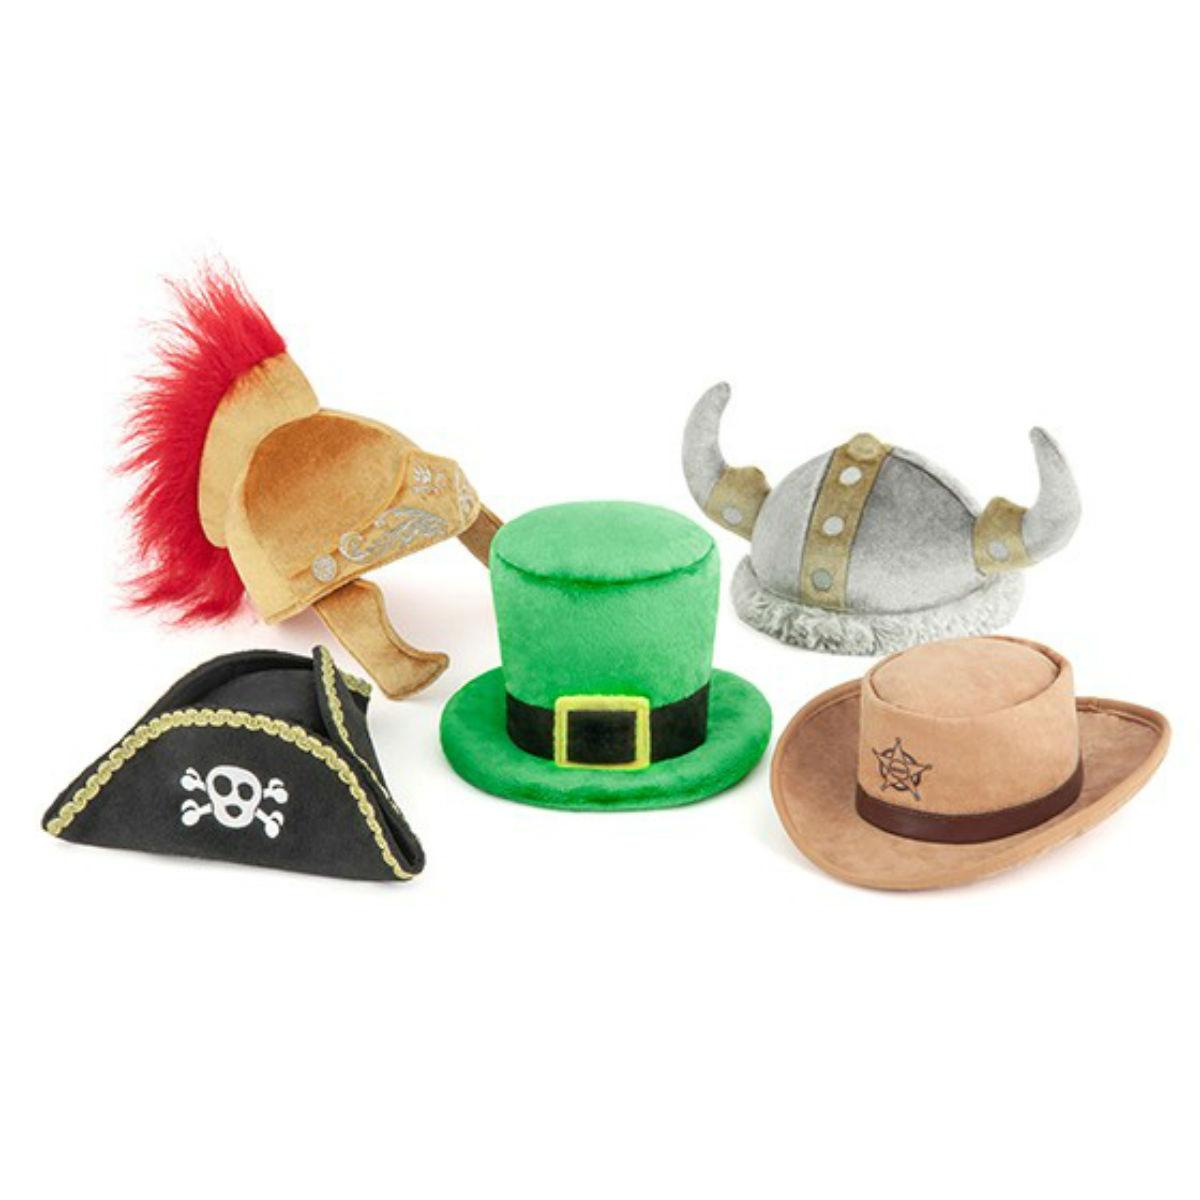 P.L.A.Y. Mutt Hatter Dog Toy Collection - 5 Piece Set